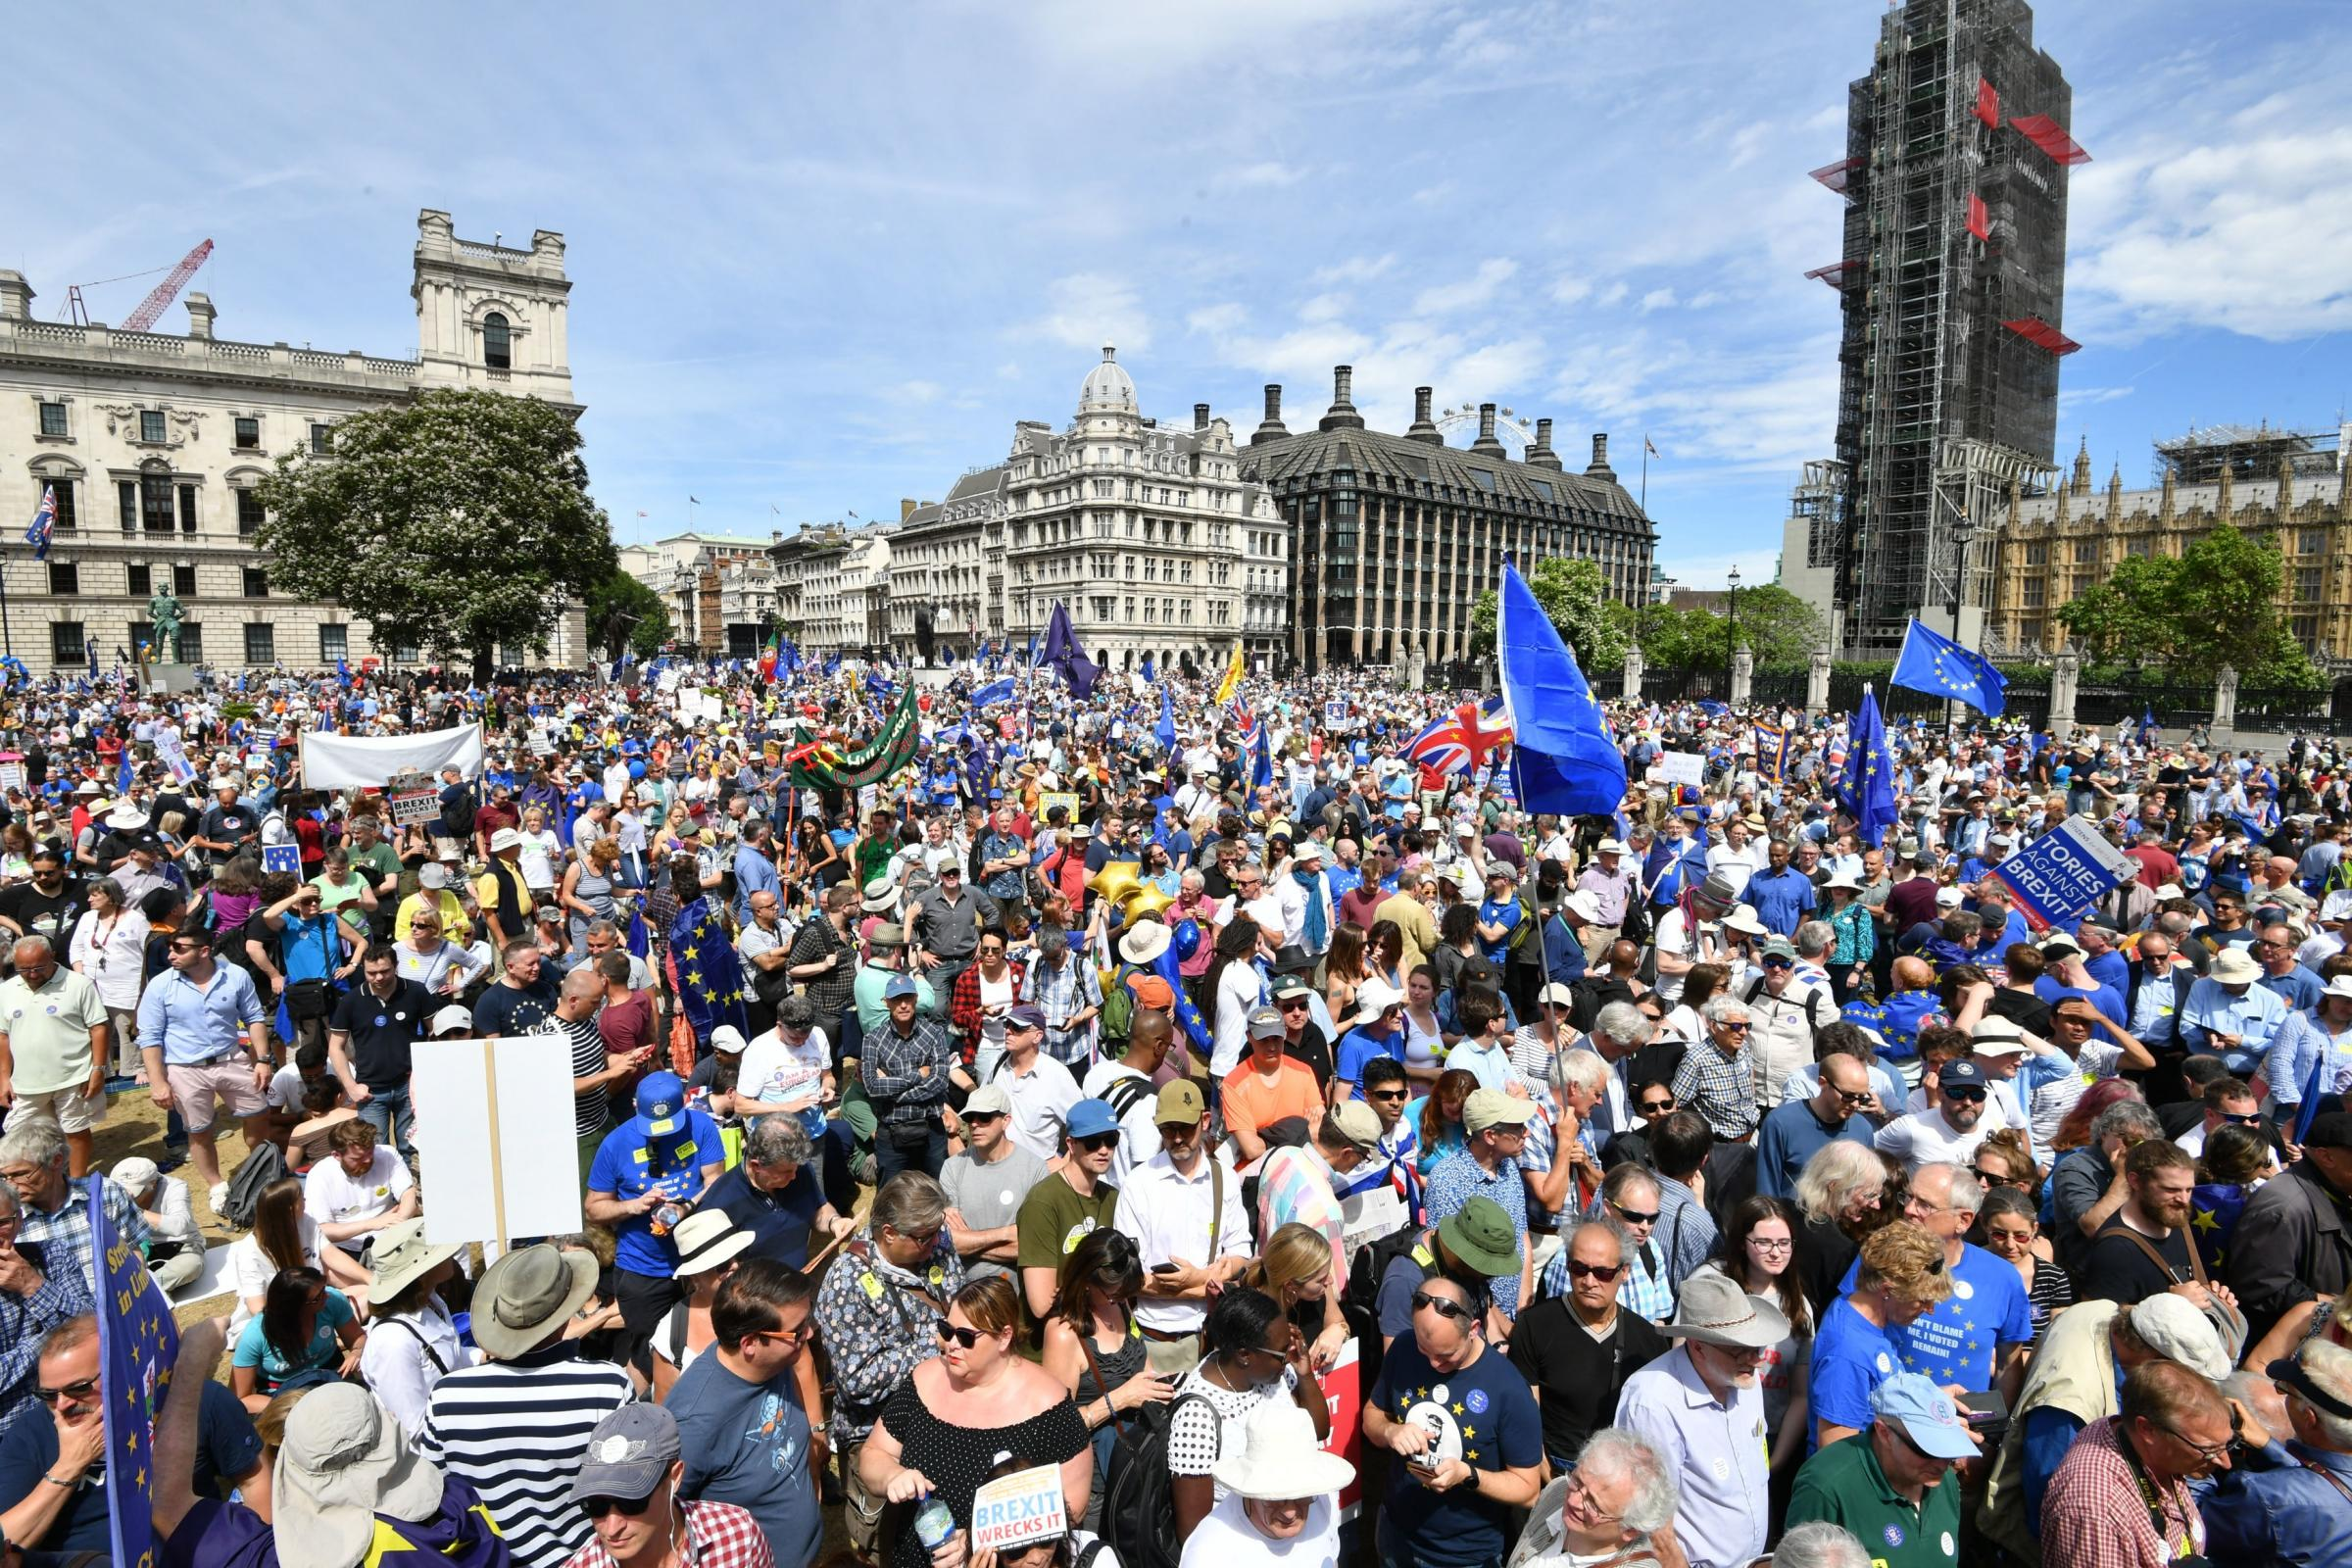 Crowds arrive in Parliament Square in central London, during the People's Vote march for a referendum on the terms of the Brexit deal